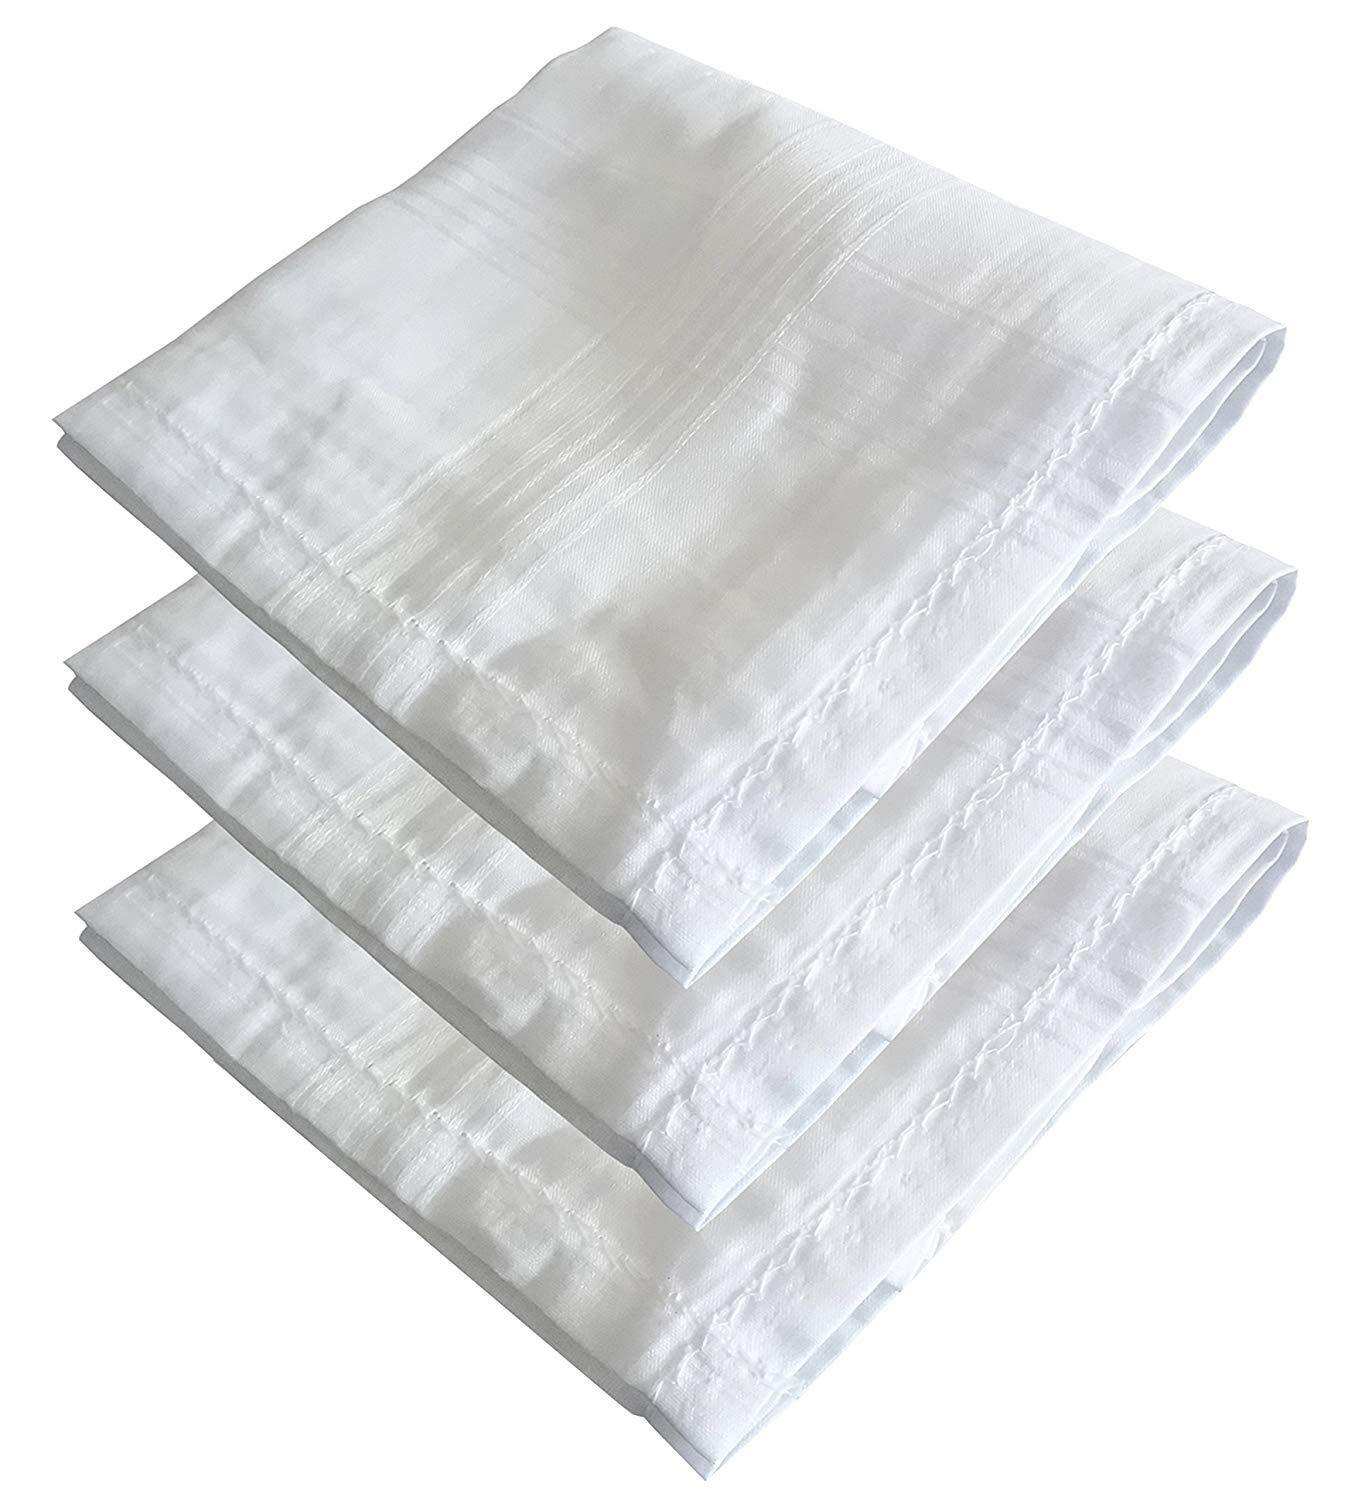 100% Cotton Luxury Collection White Hanky Handkerchiefs Pack of 6